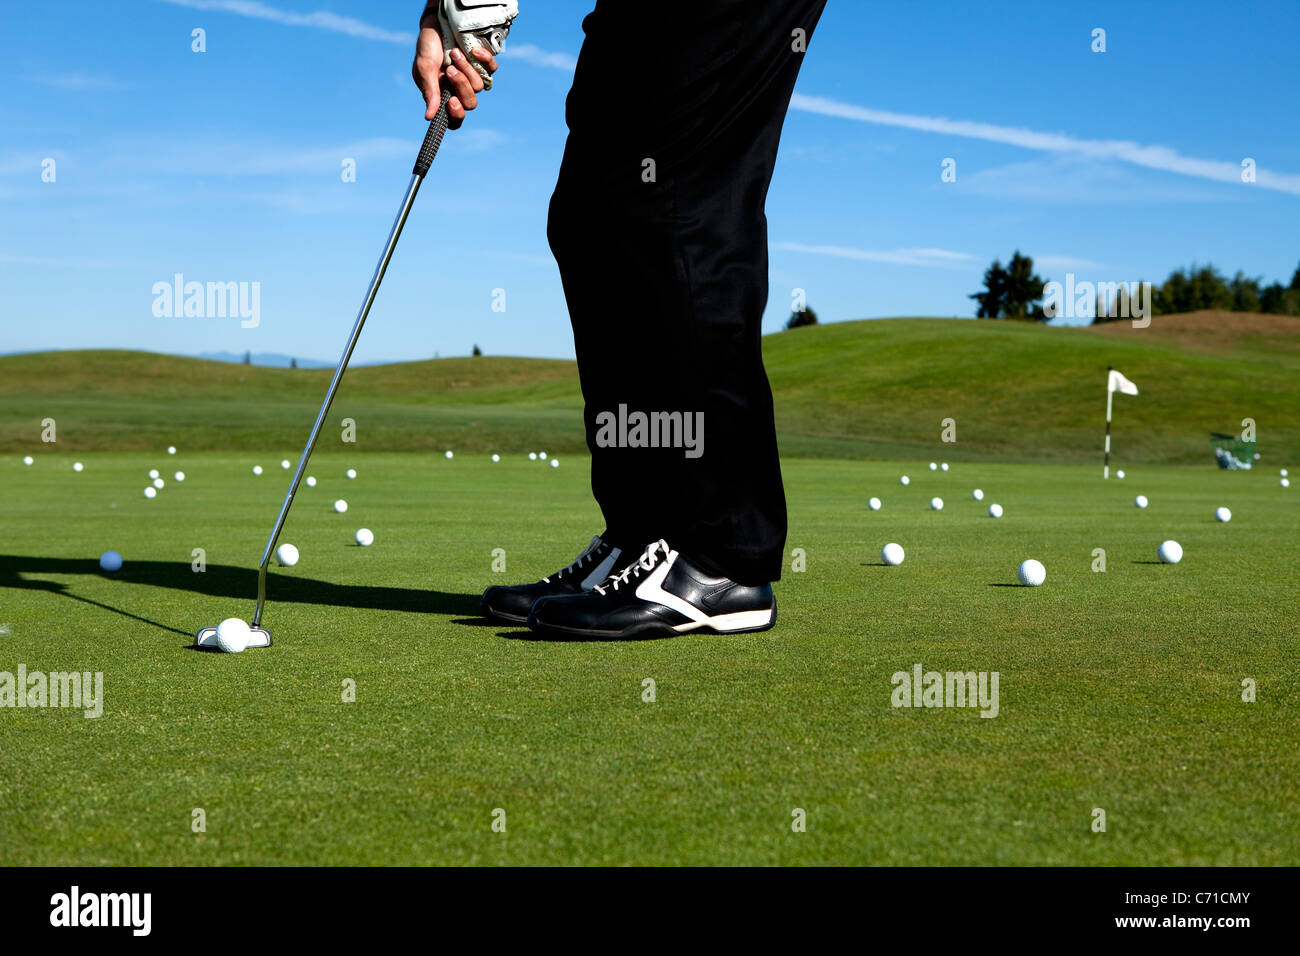 Man lining up a putt while golfing. - Stock Image